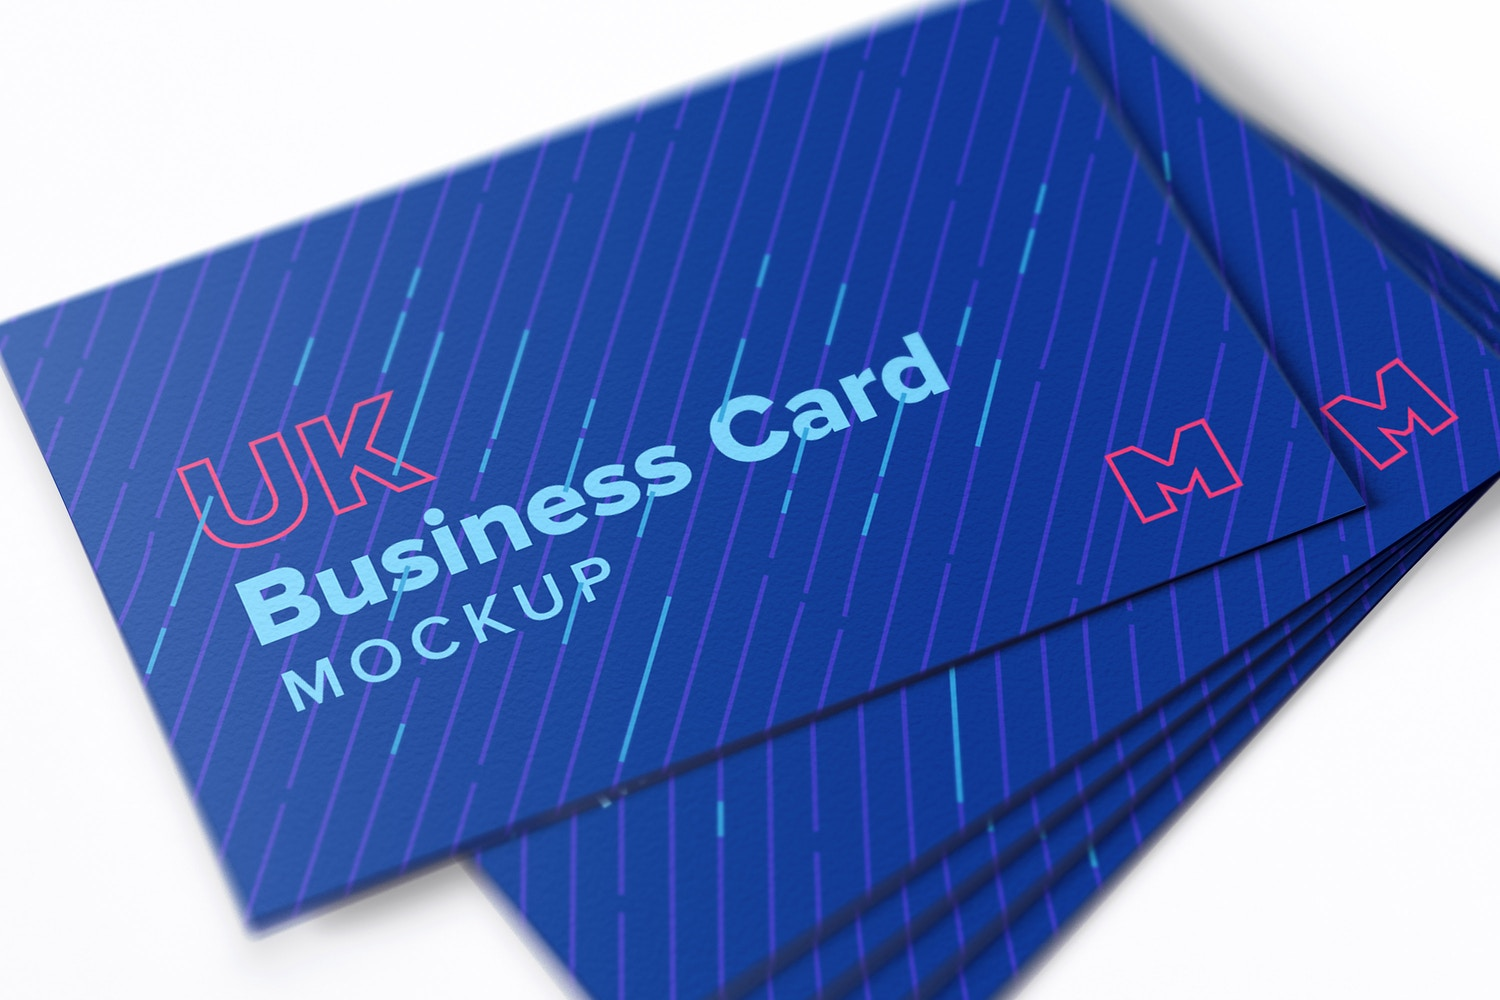 UK Business Cards Mockup 04 by Original Mockups on Original Mockups